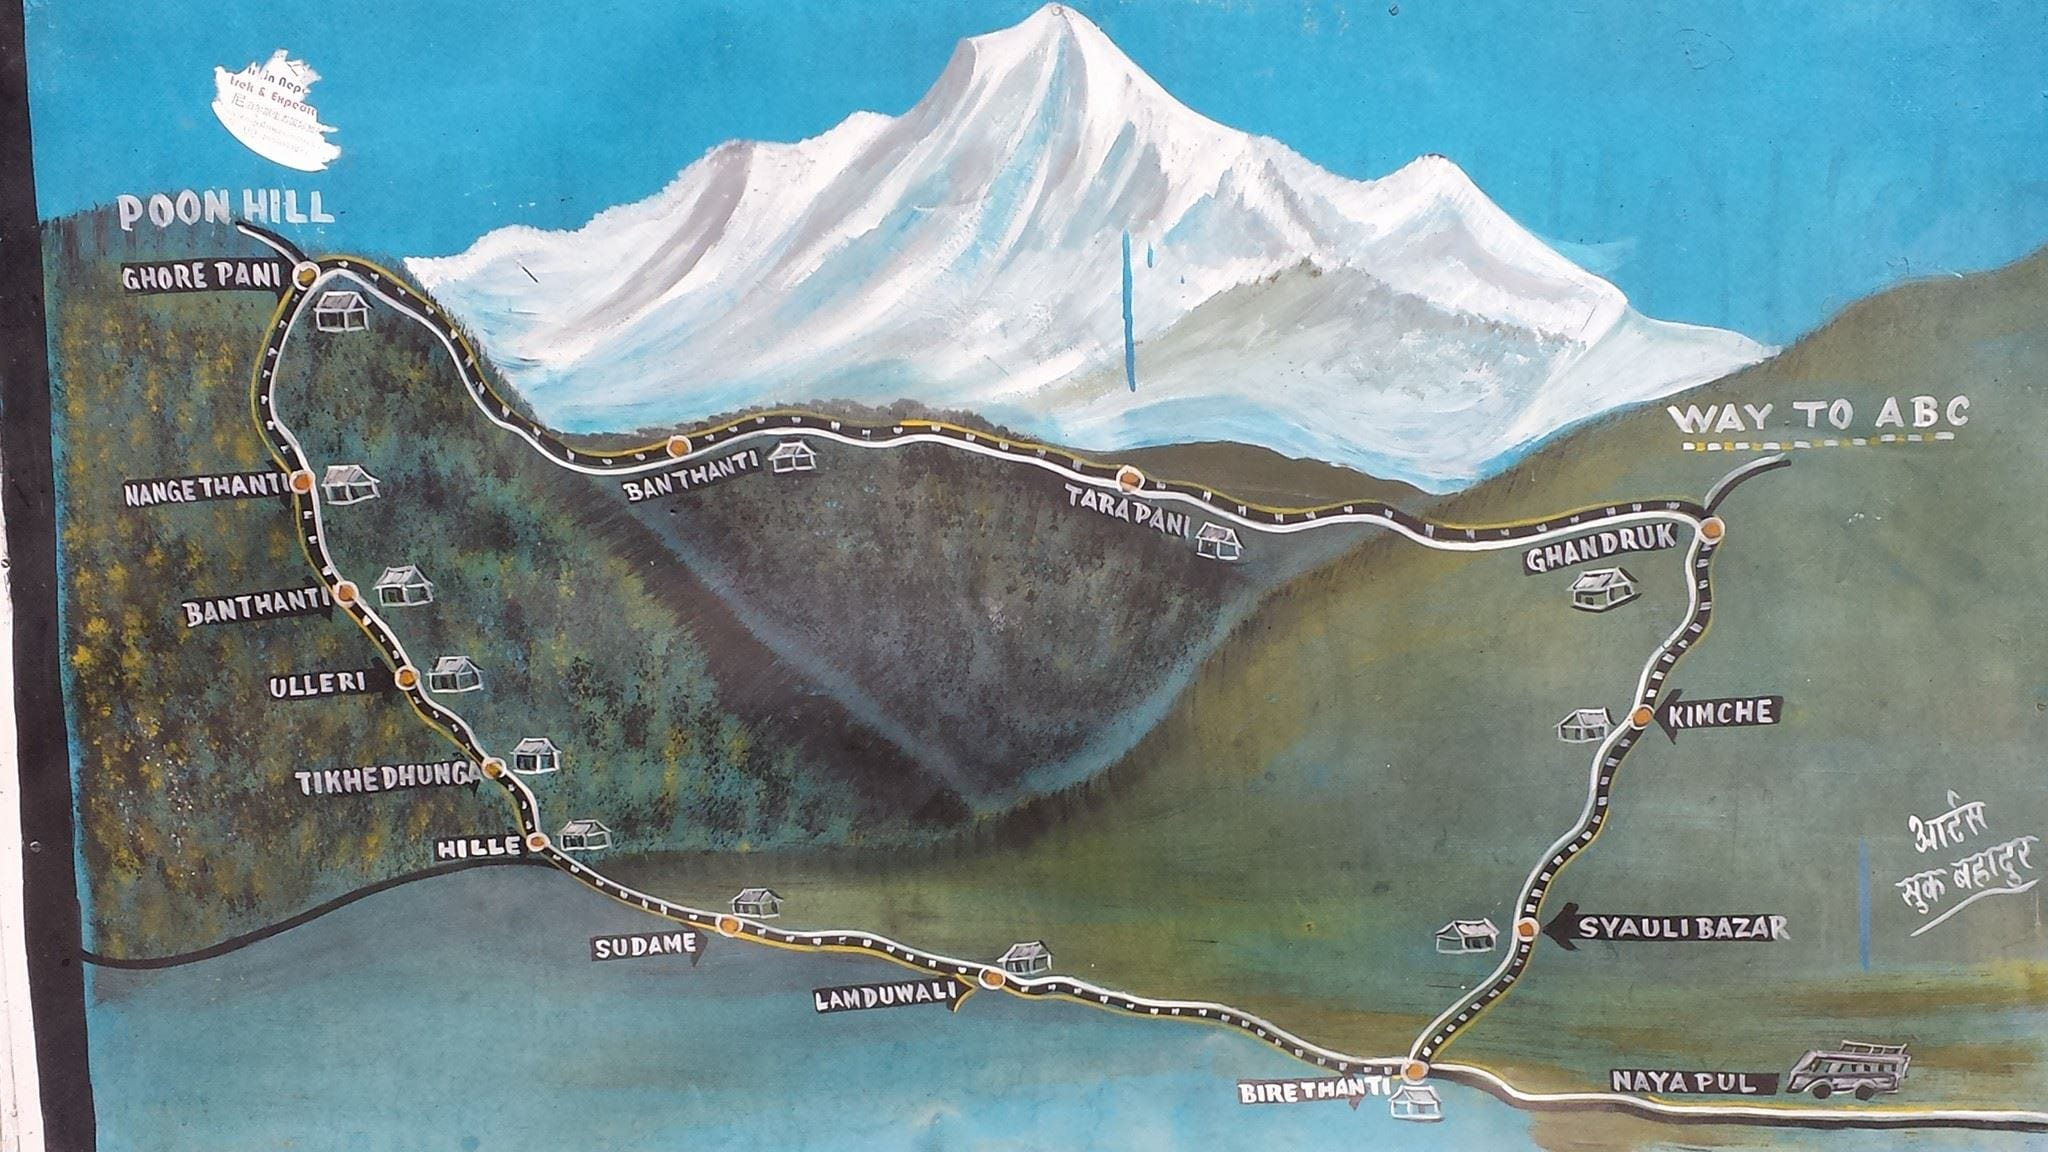 Map of the Ghorepani Poon Hill trek in Nepal